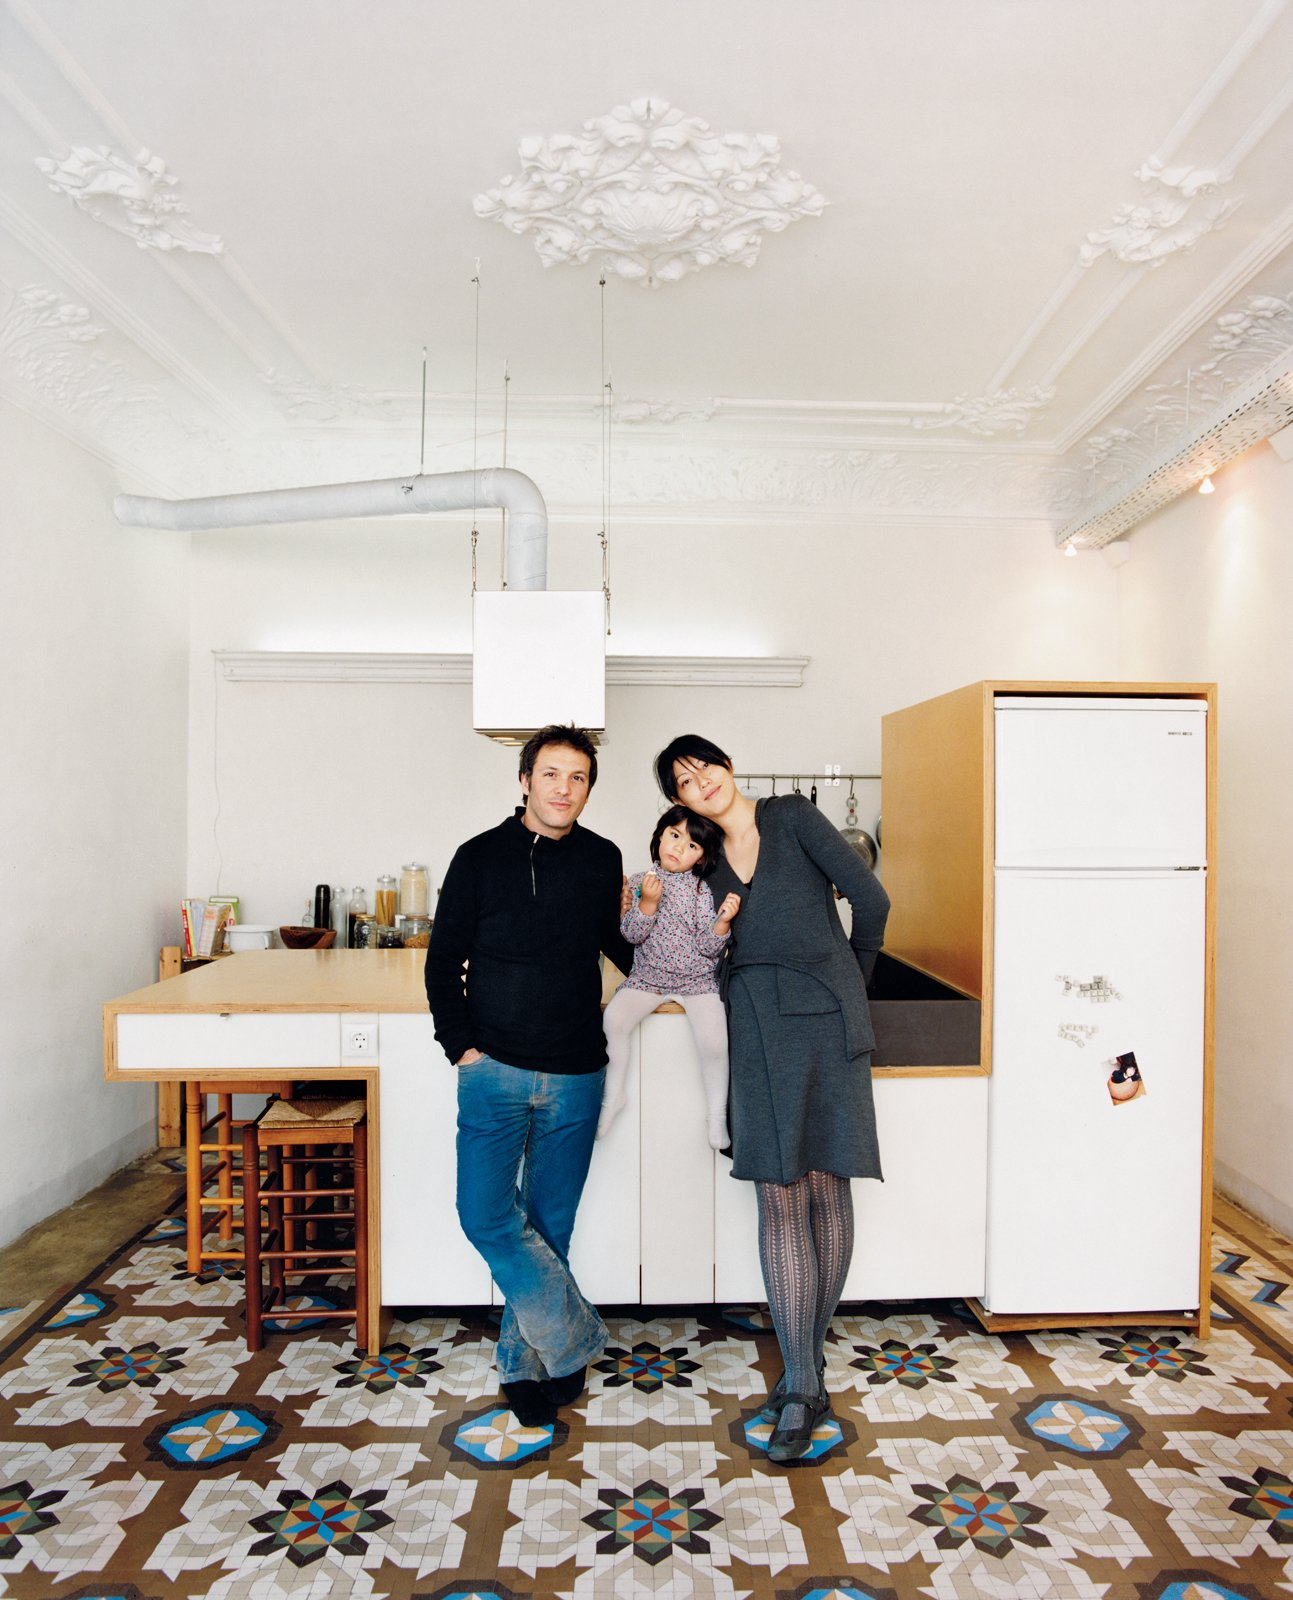 Articles about 7 renovations centuries old structures on Dwell.com